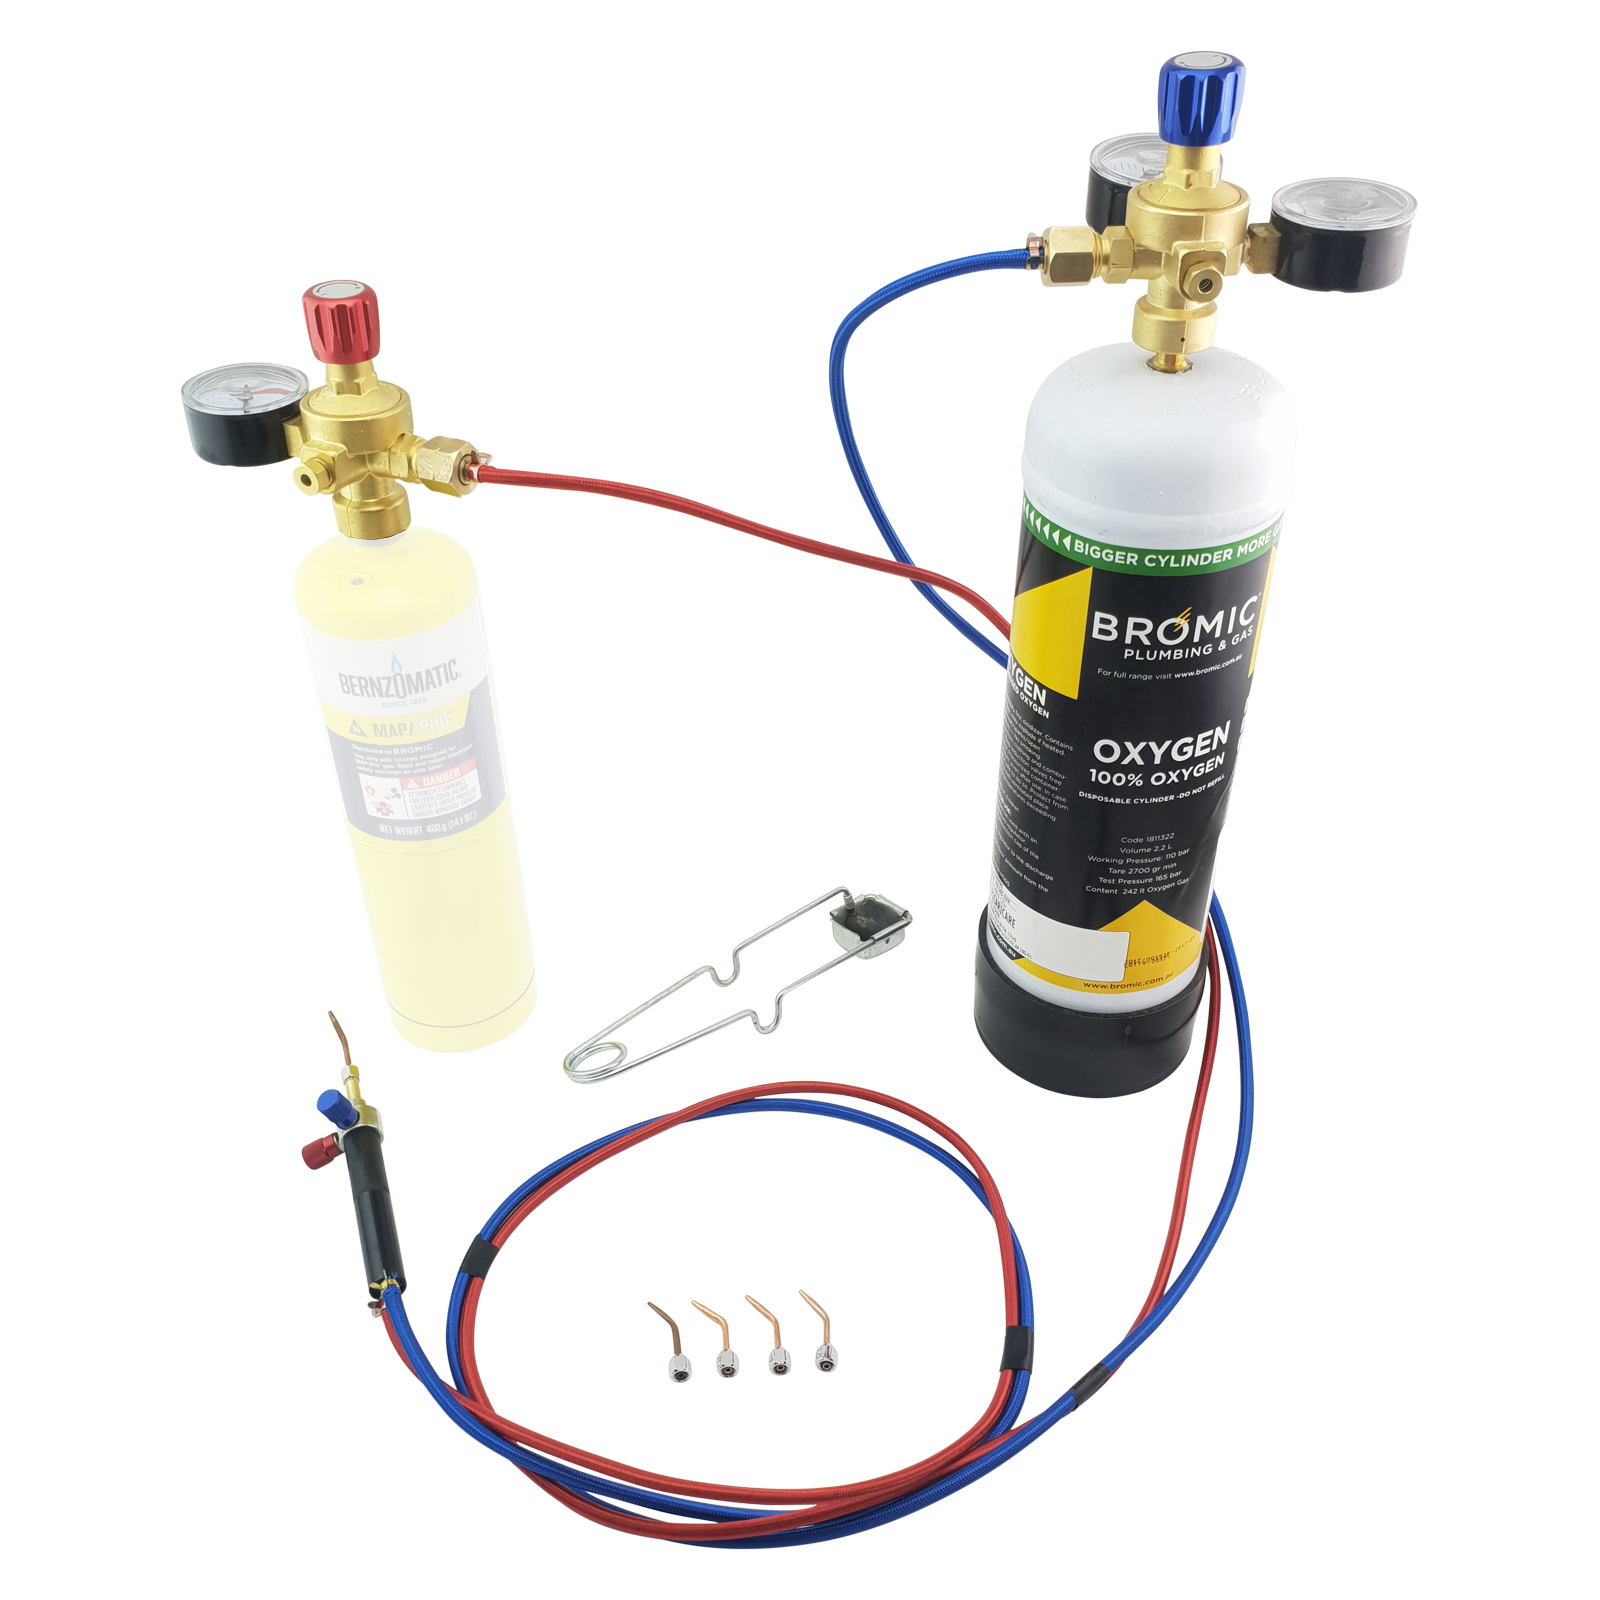 Micro Torch Kit with regulators for Welding Brazing Oxy Mapp